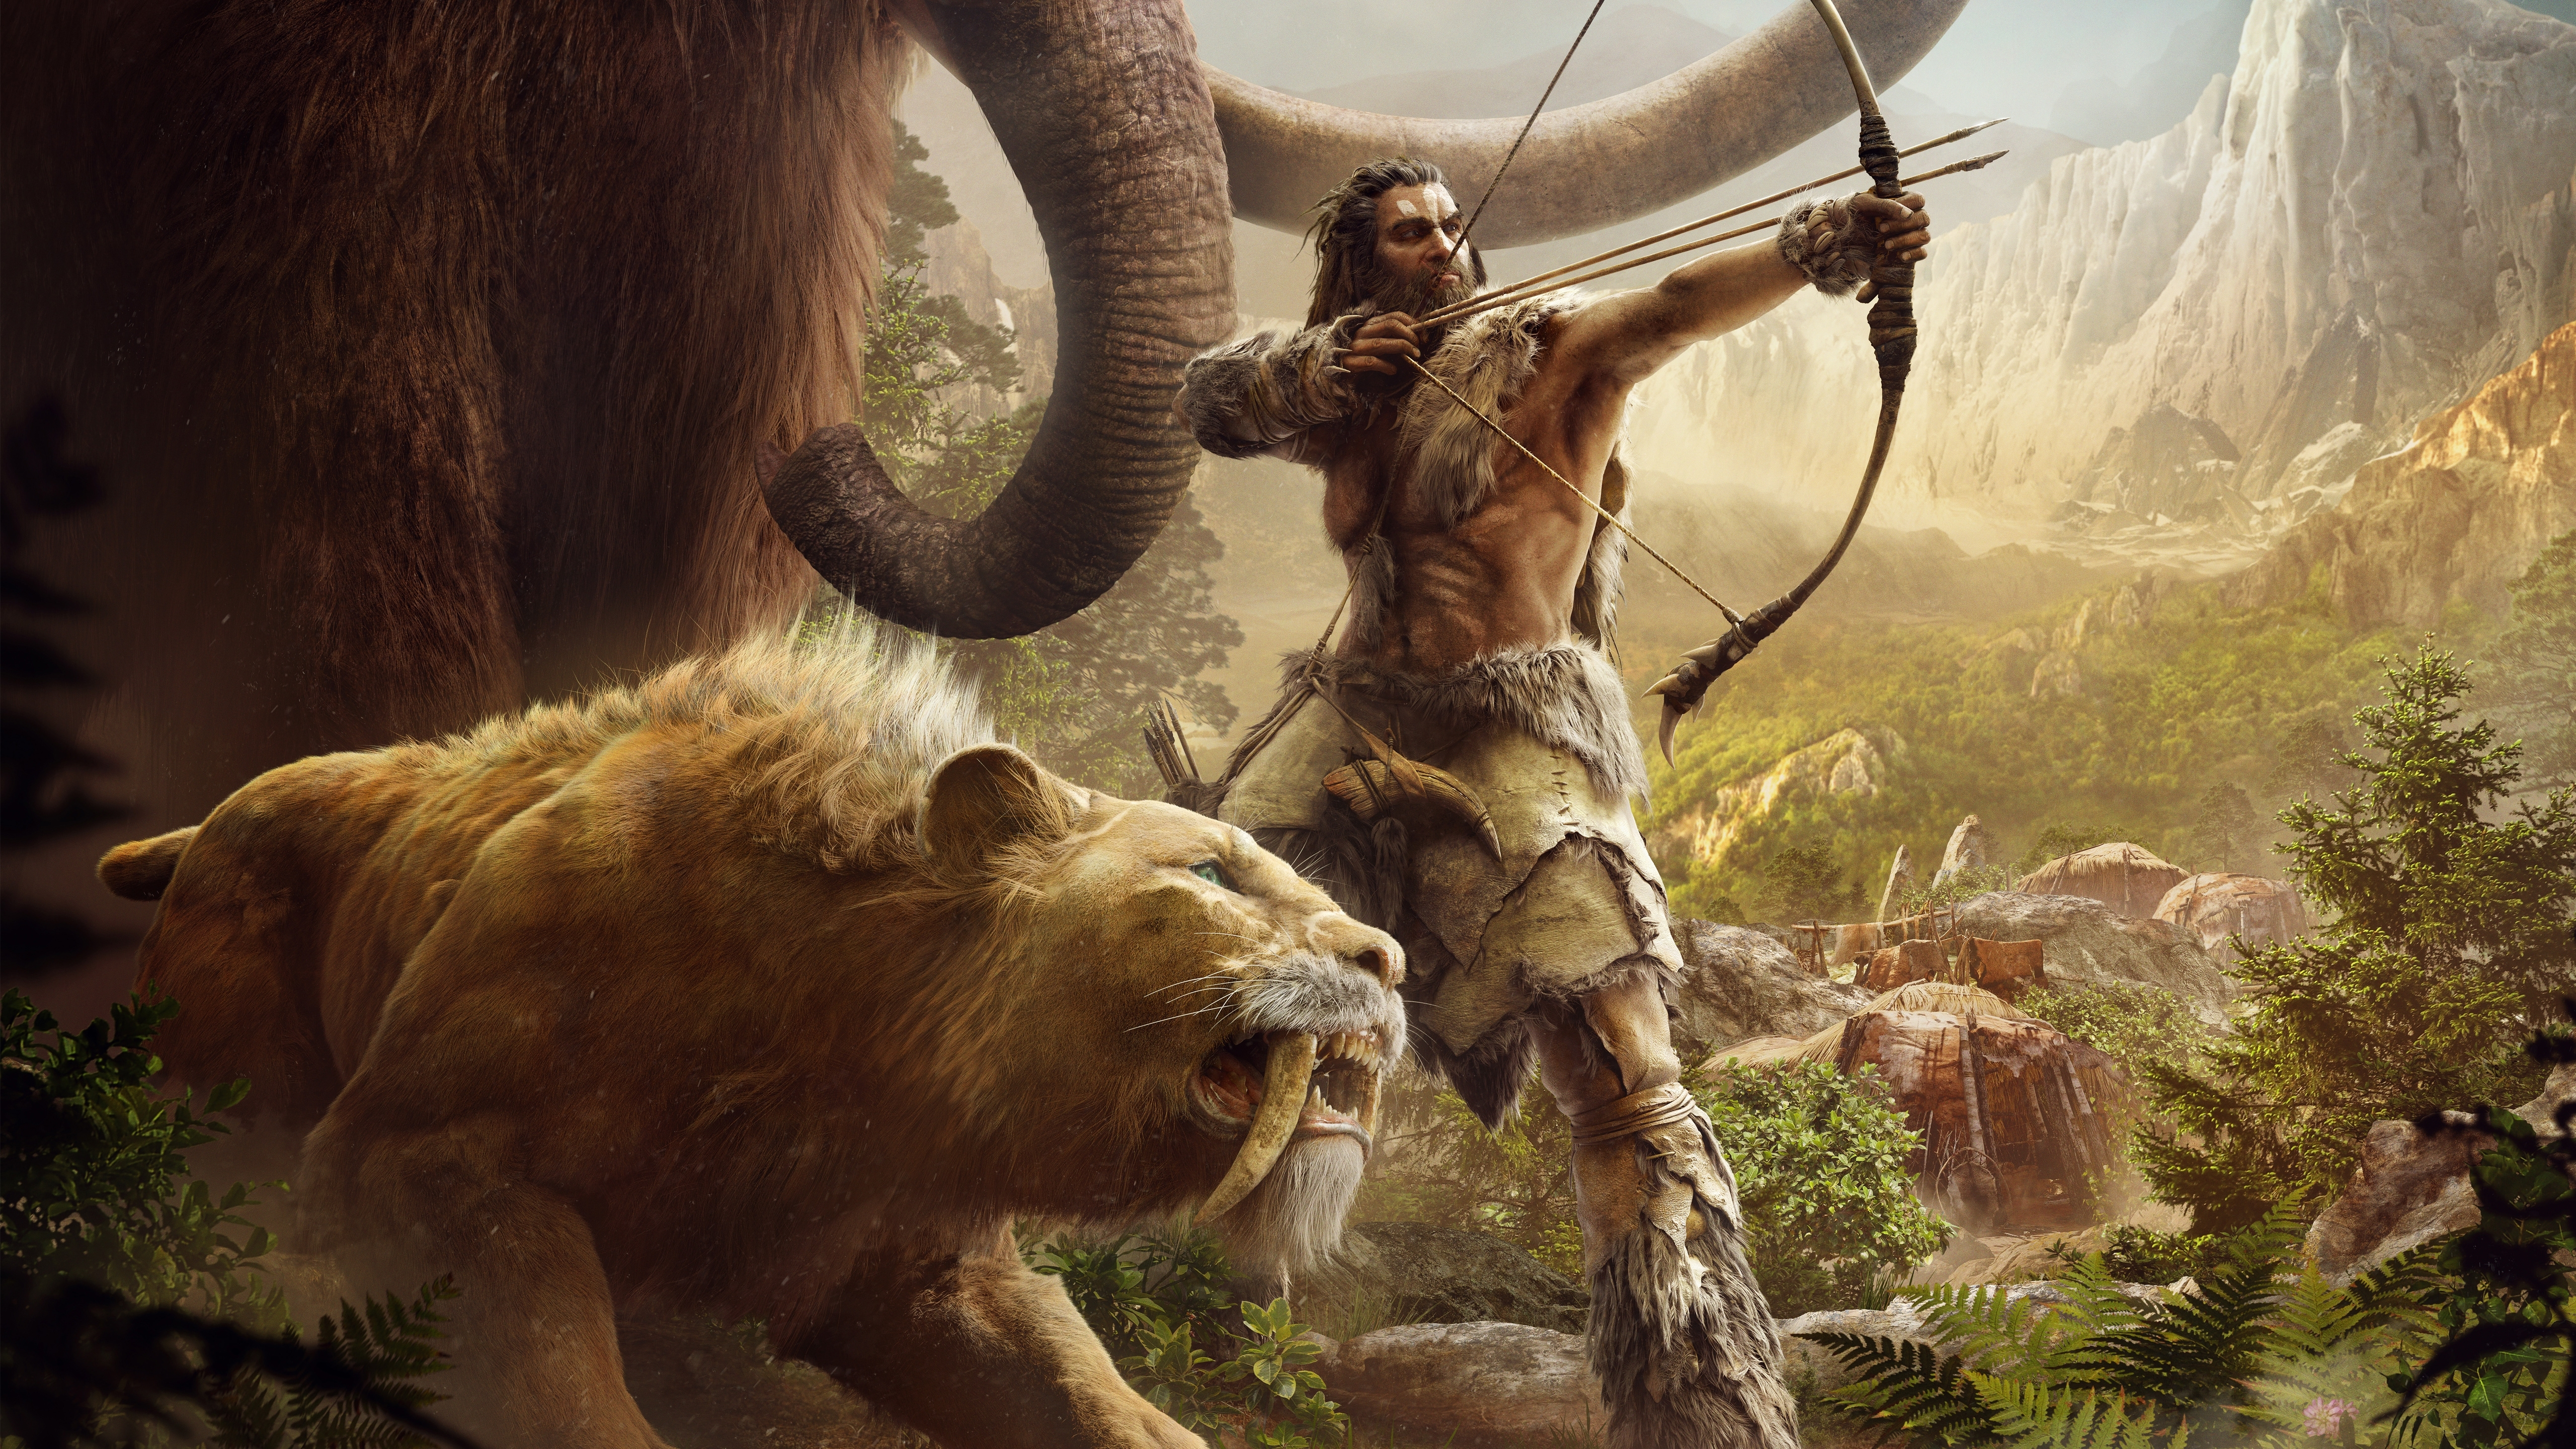 wallpaper mammoth, sabretooth tiger, far cry, primal, 5k, games, #829